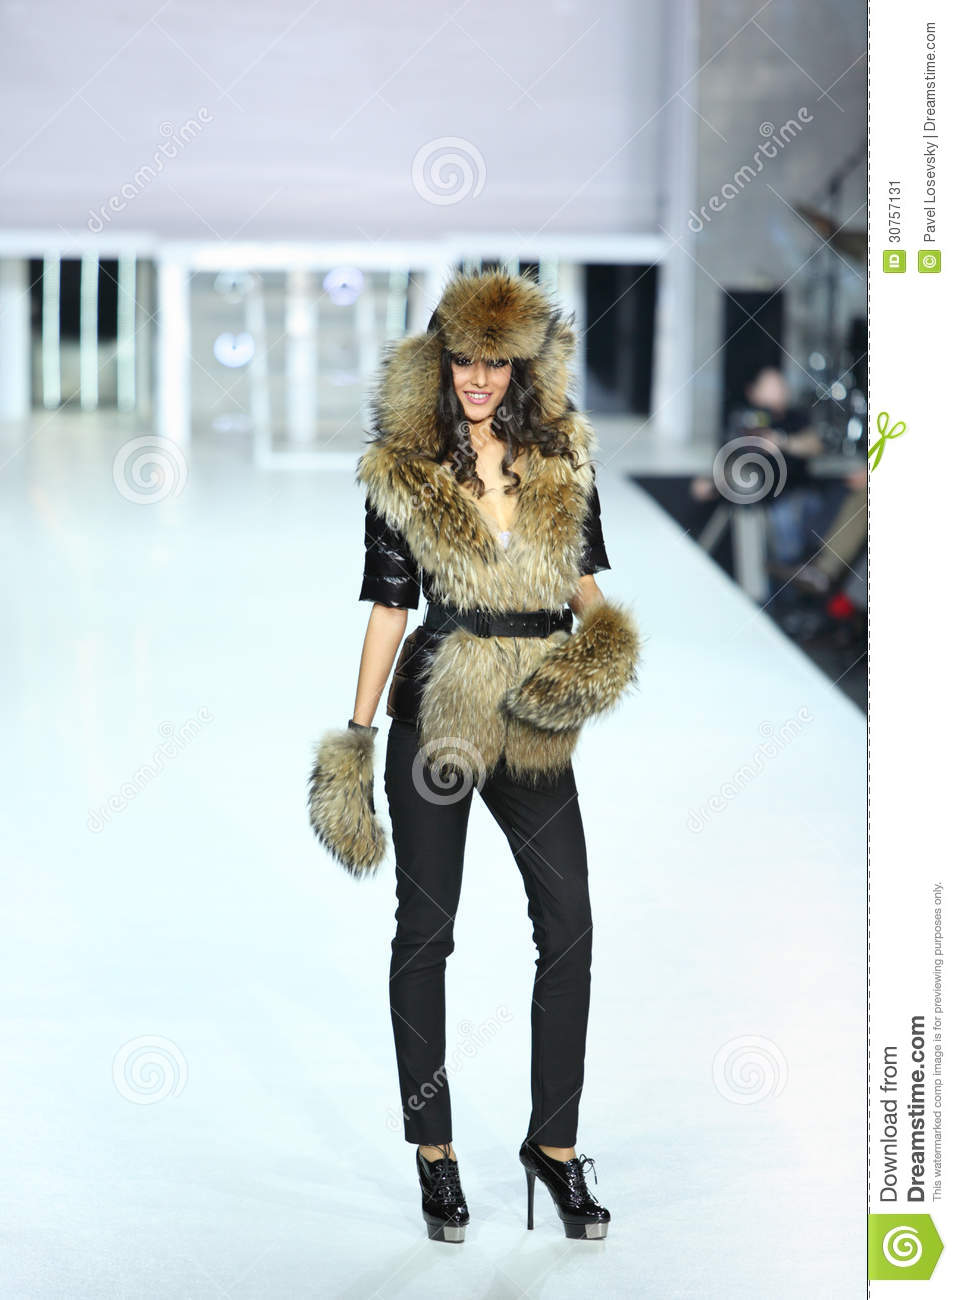 Woman in furry clothes from ODRI